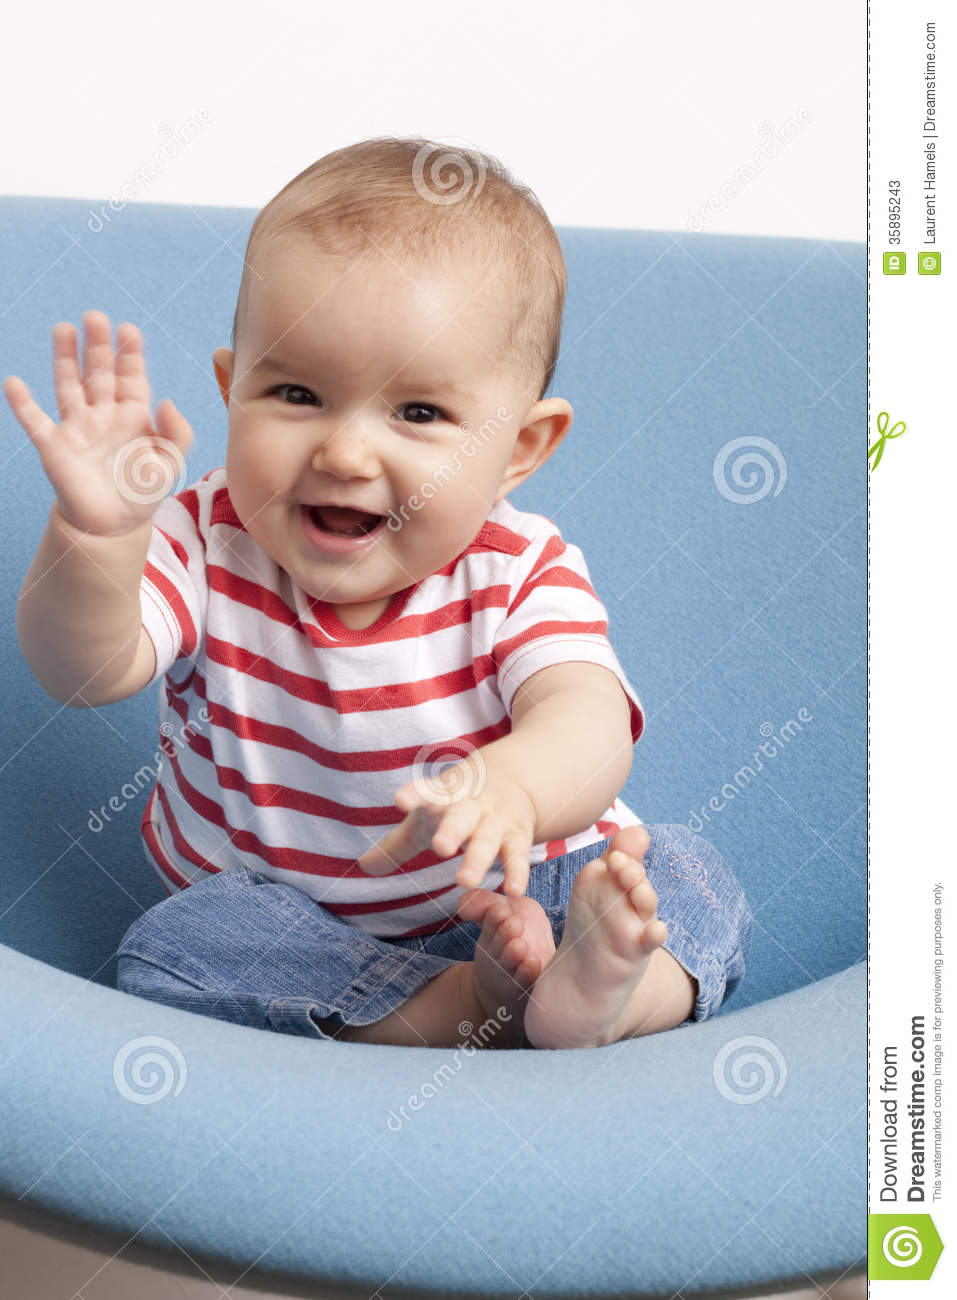 hi baby images young baby saying hello stock image image of playing 4512